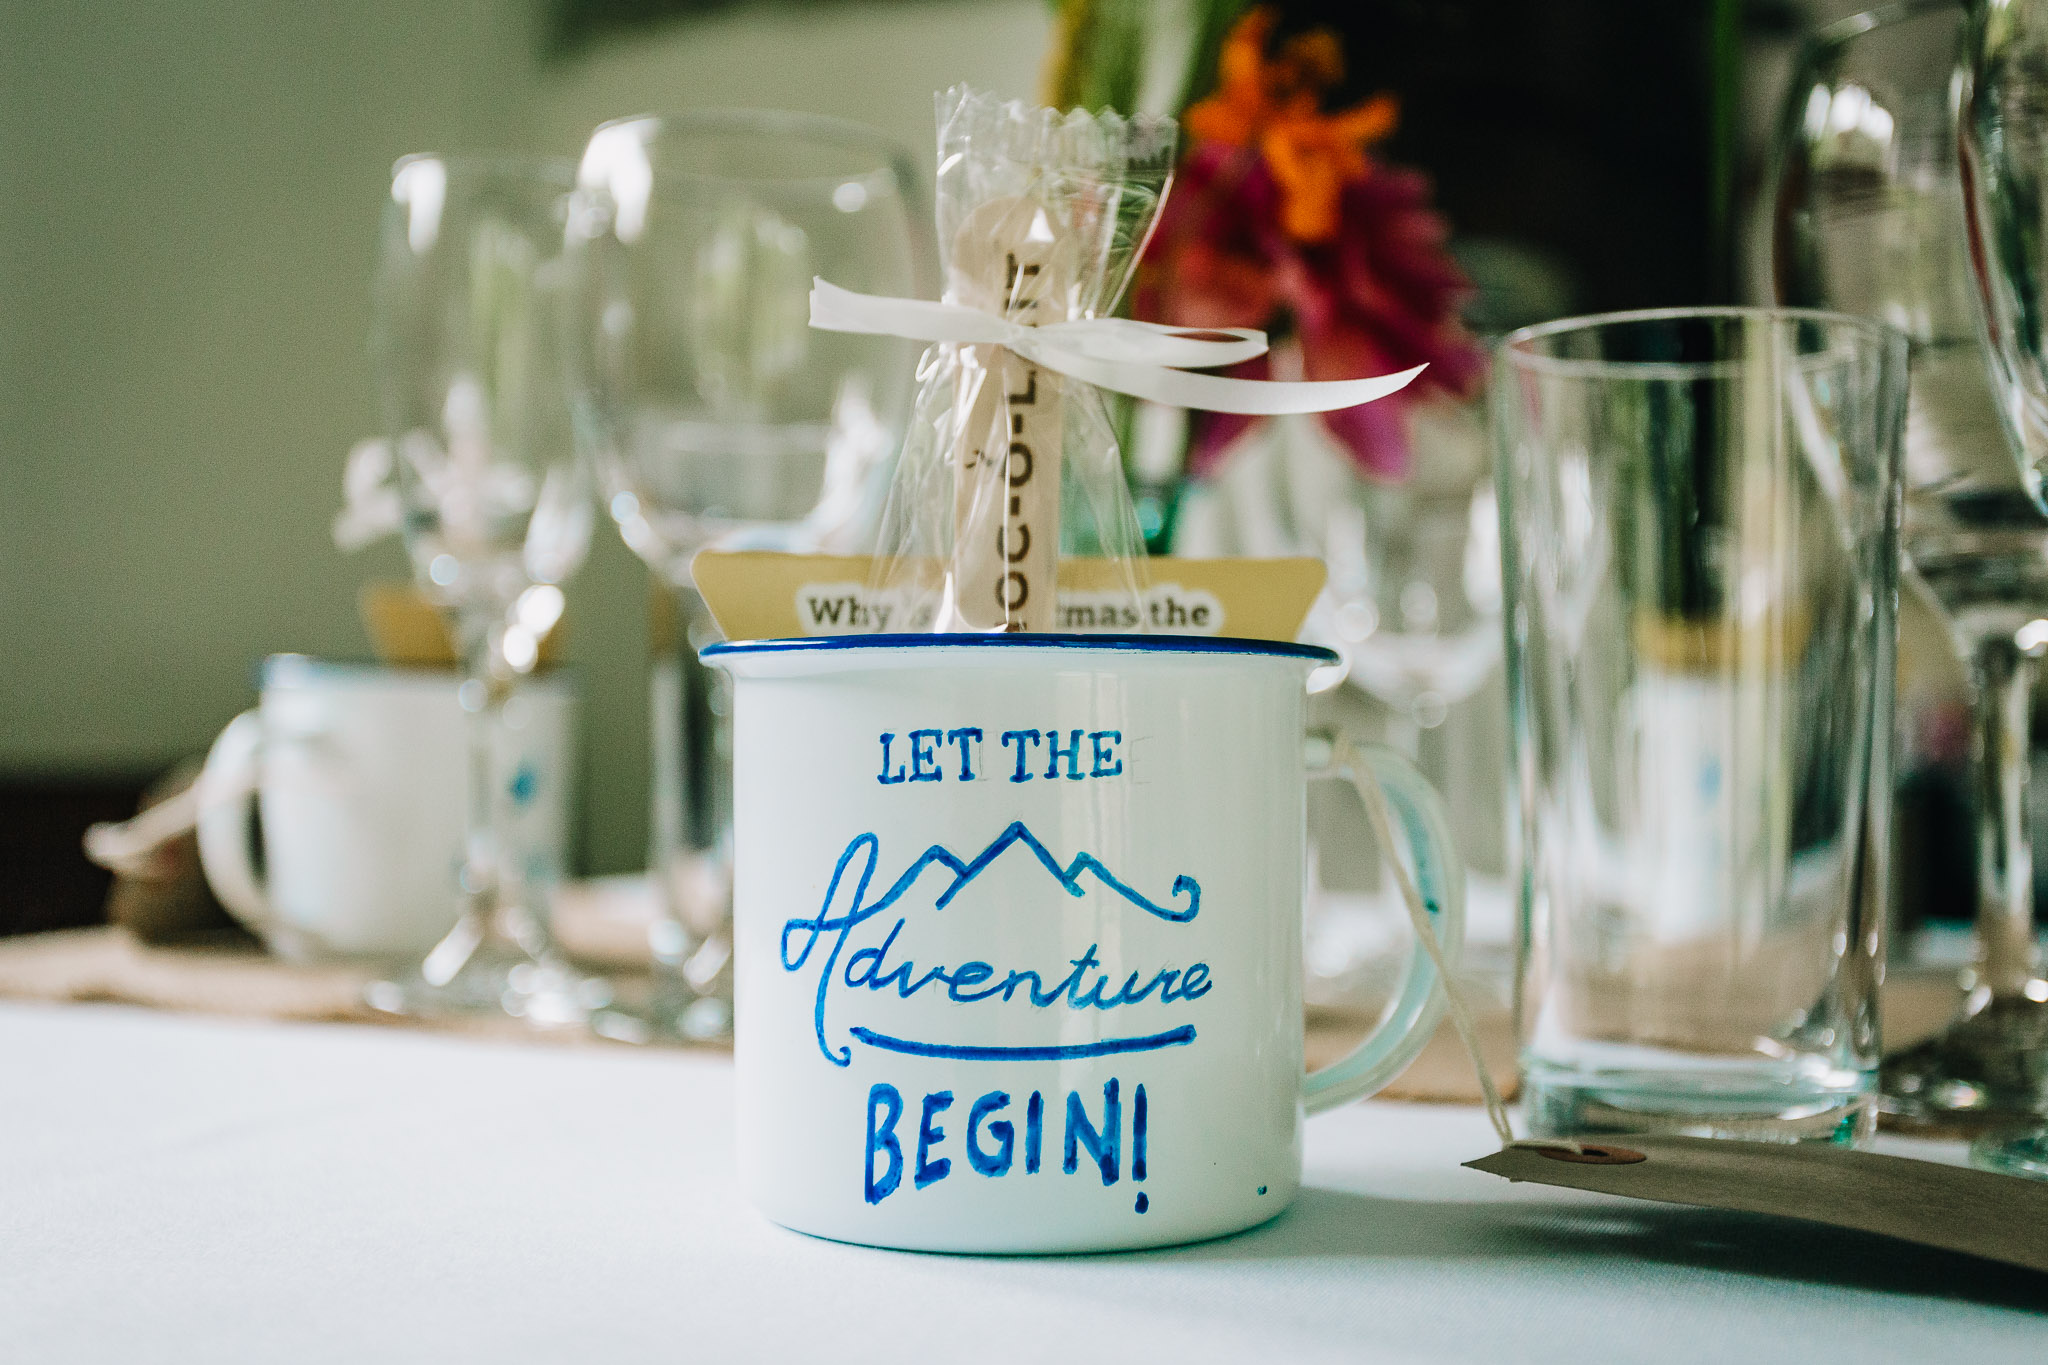 WHITE TIN CAMPING MUG WEDDING FAVOUR SAYING LET THE ADVENTURE BEGIN